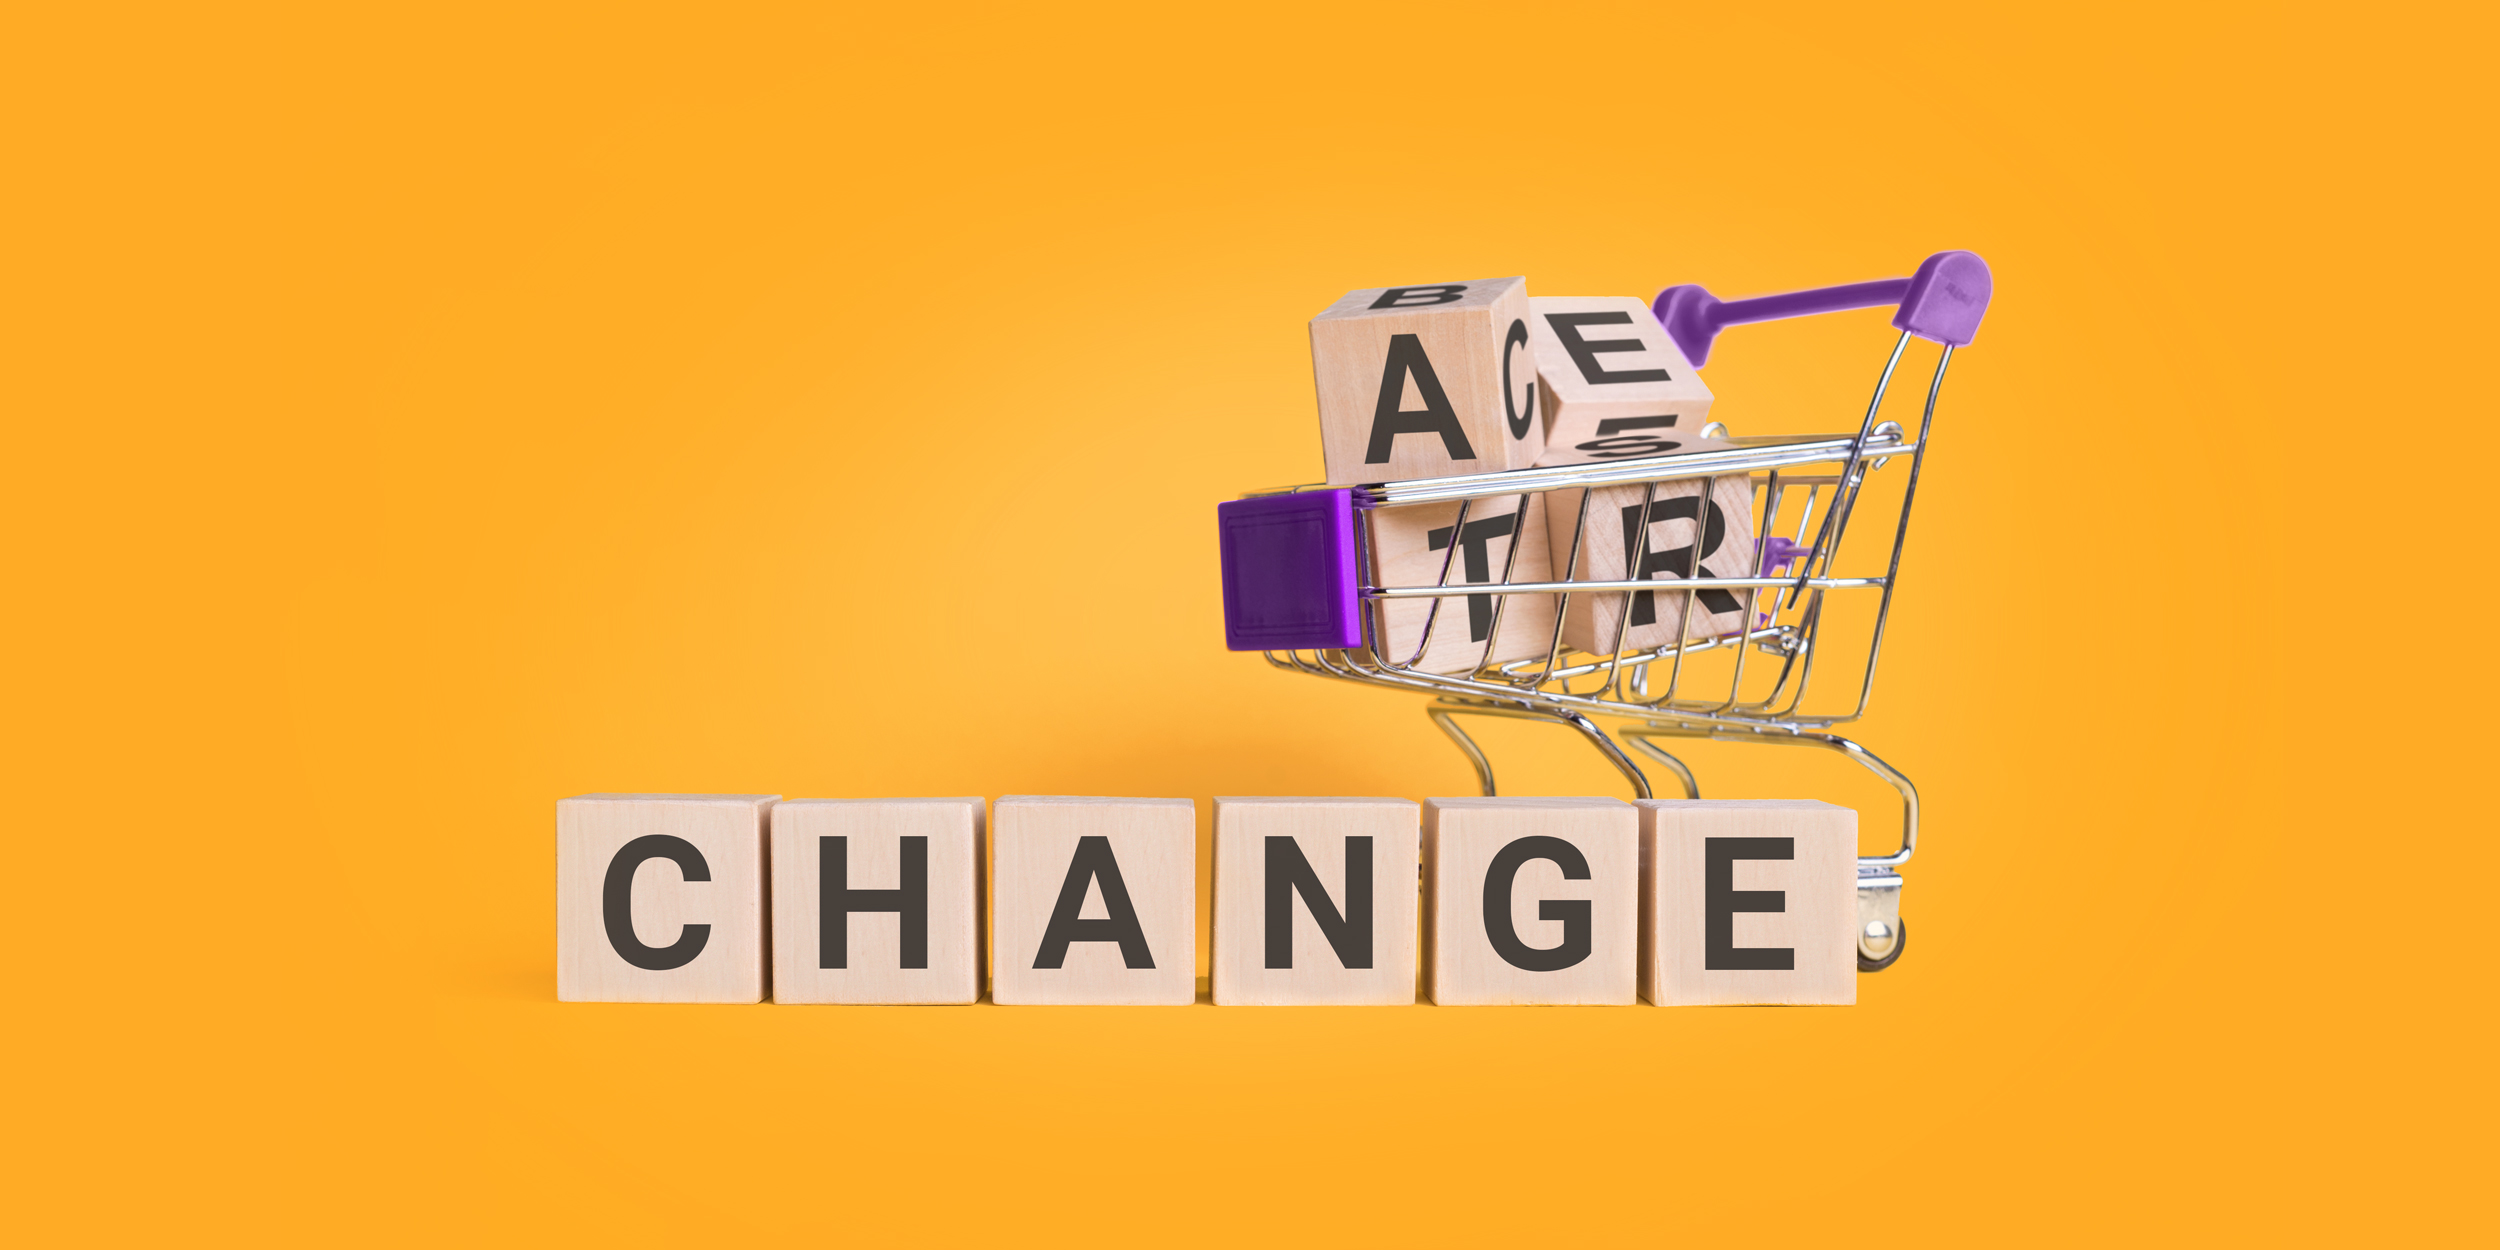 Replatforming Done Right: Focusing Your E-Commerce For the Future